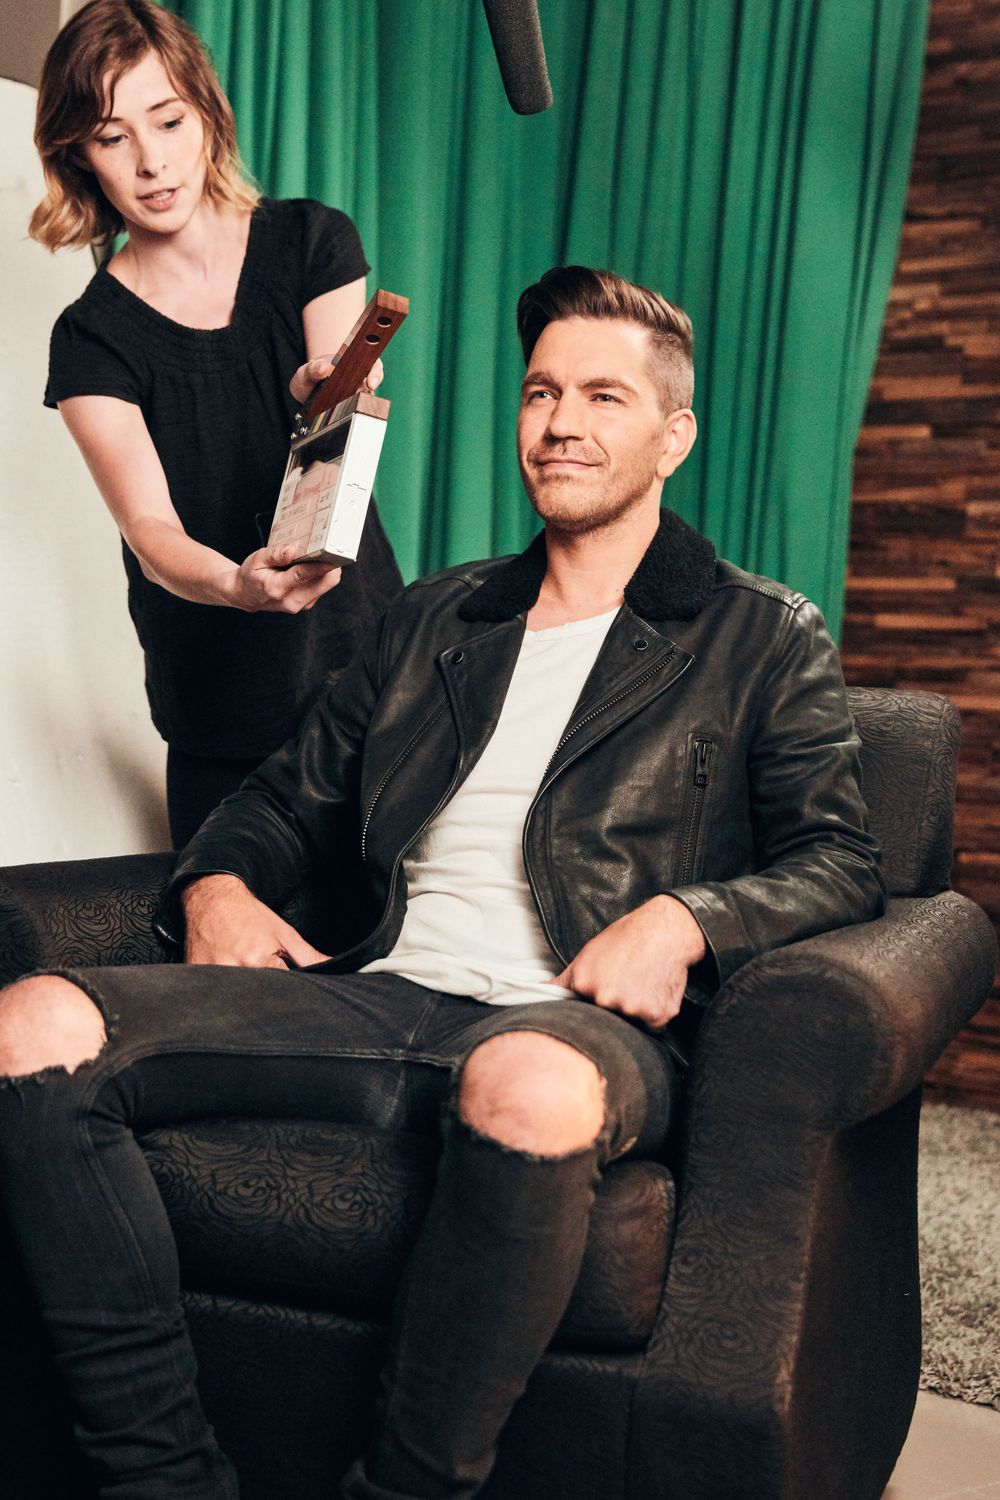 Behind The Scenes with Andy Grammer at Only In Nashville. Photo by Joel Alexander